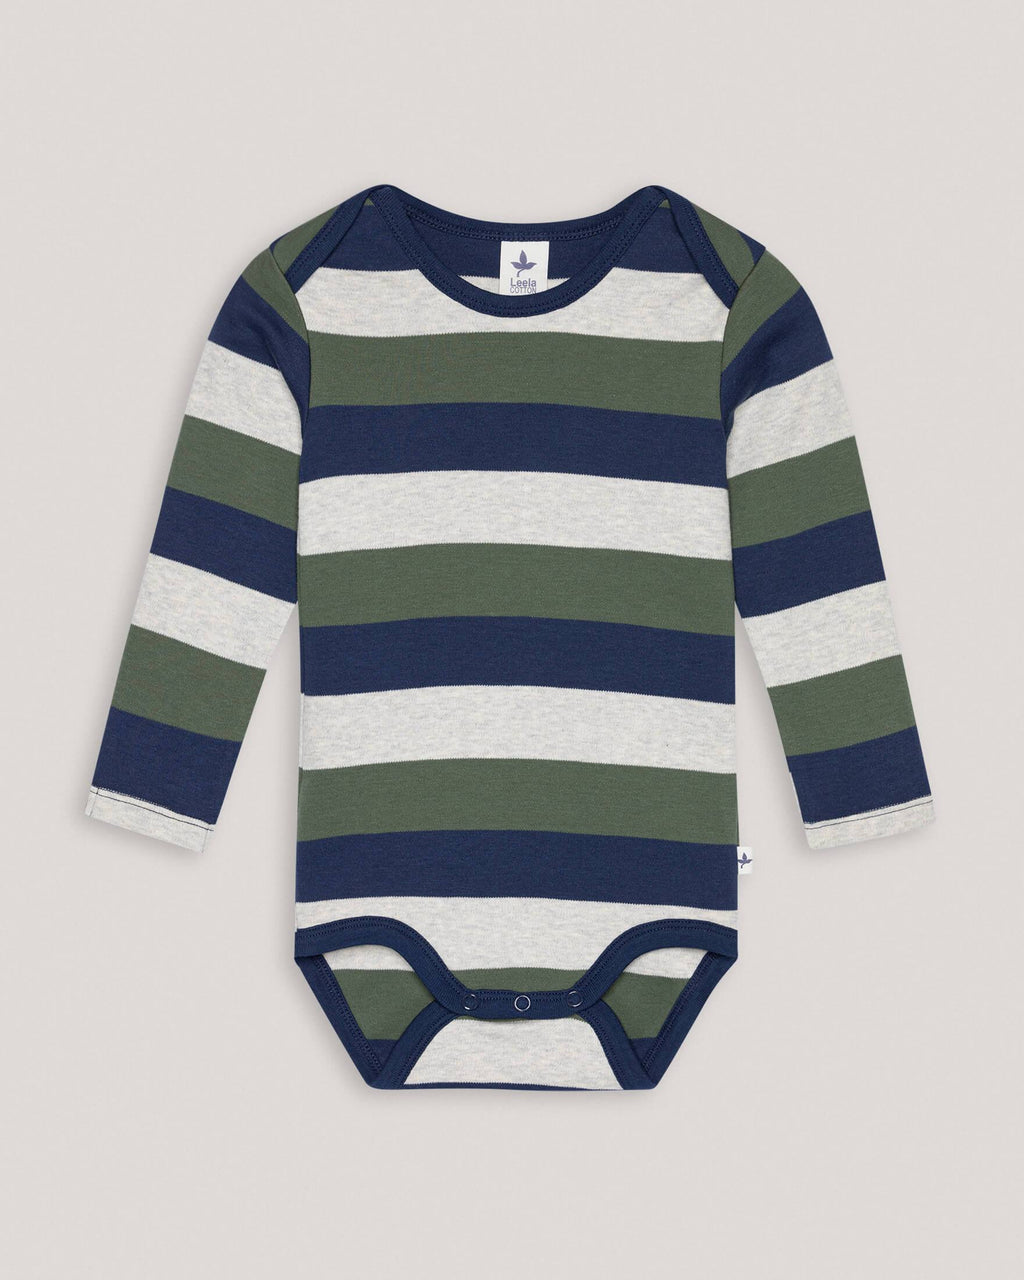 variant_2 | EN Green Bodysuit for baby | DE Grüner Body für Baby